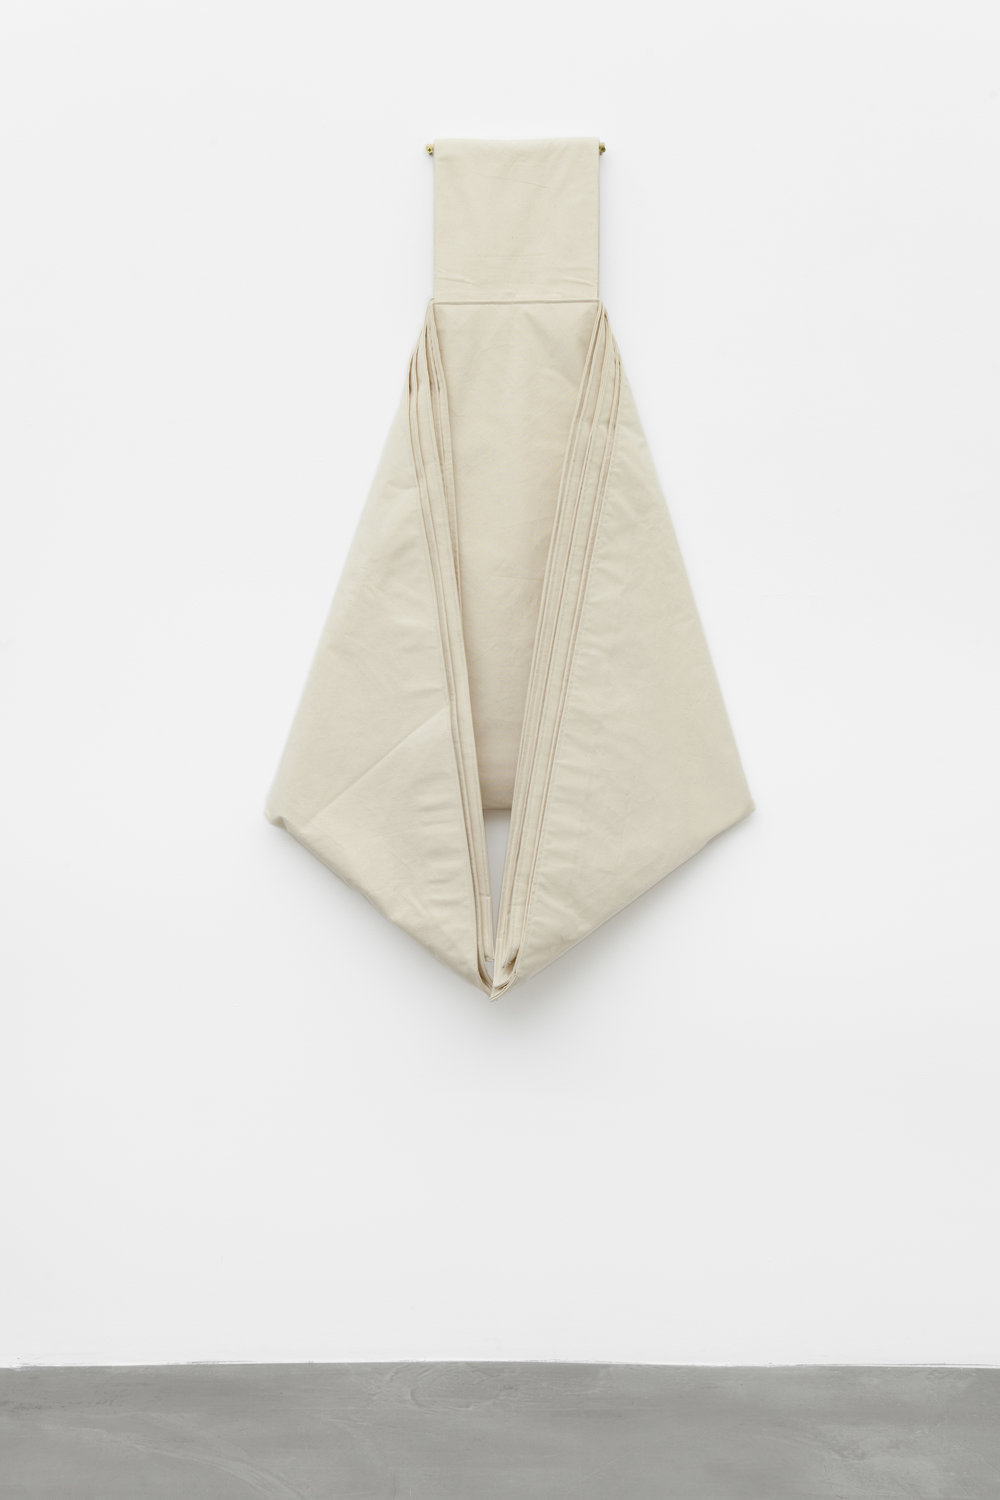 Friedrich Teepe  1983-3 , 1983,  cotton, raw, 150 x 80 x 50 cm